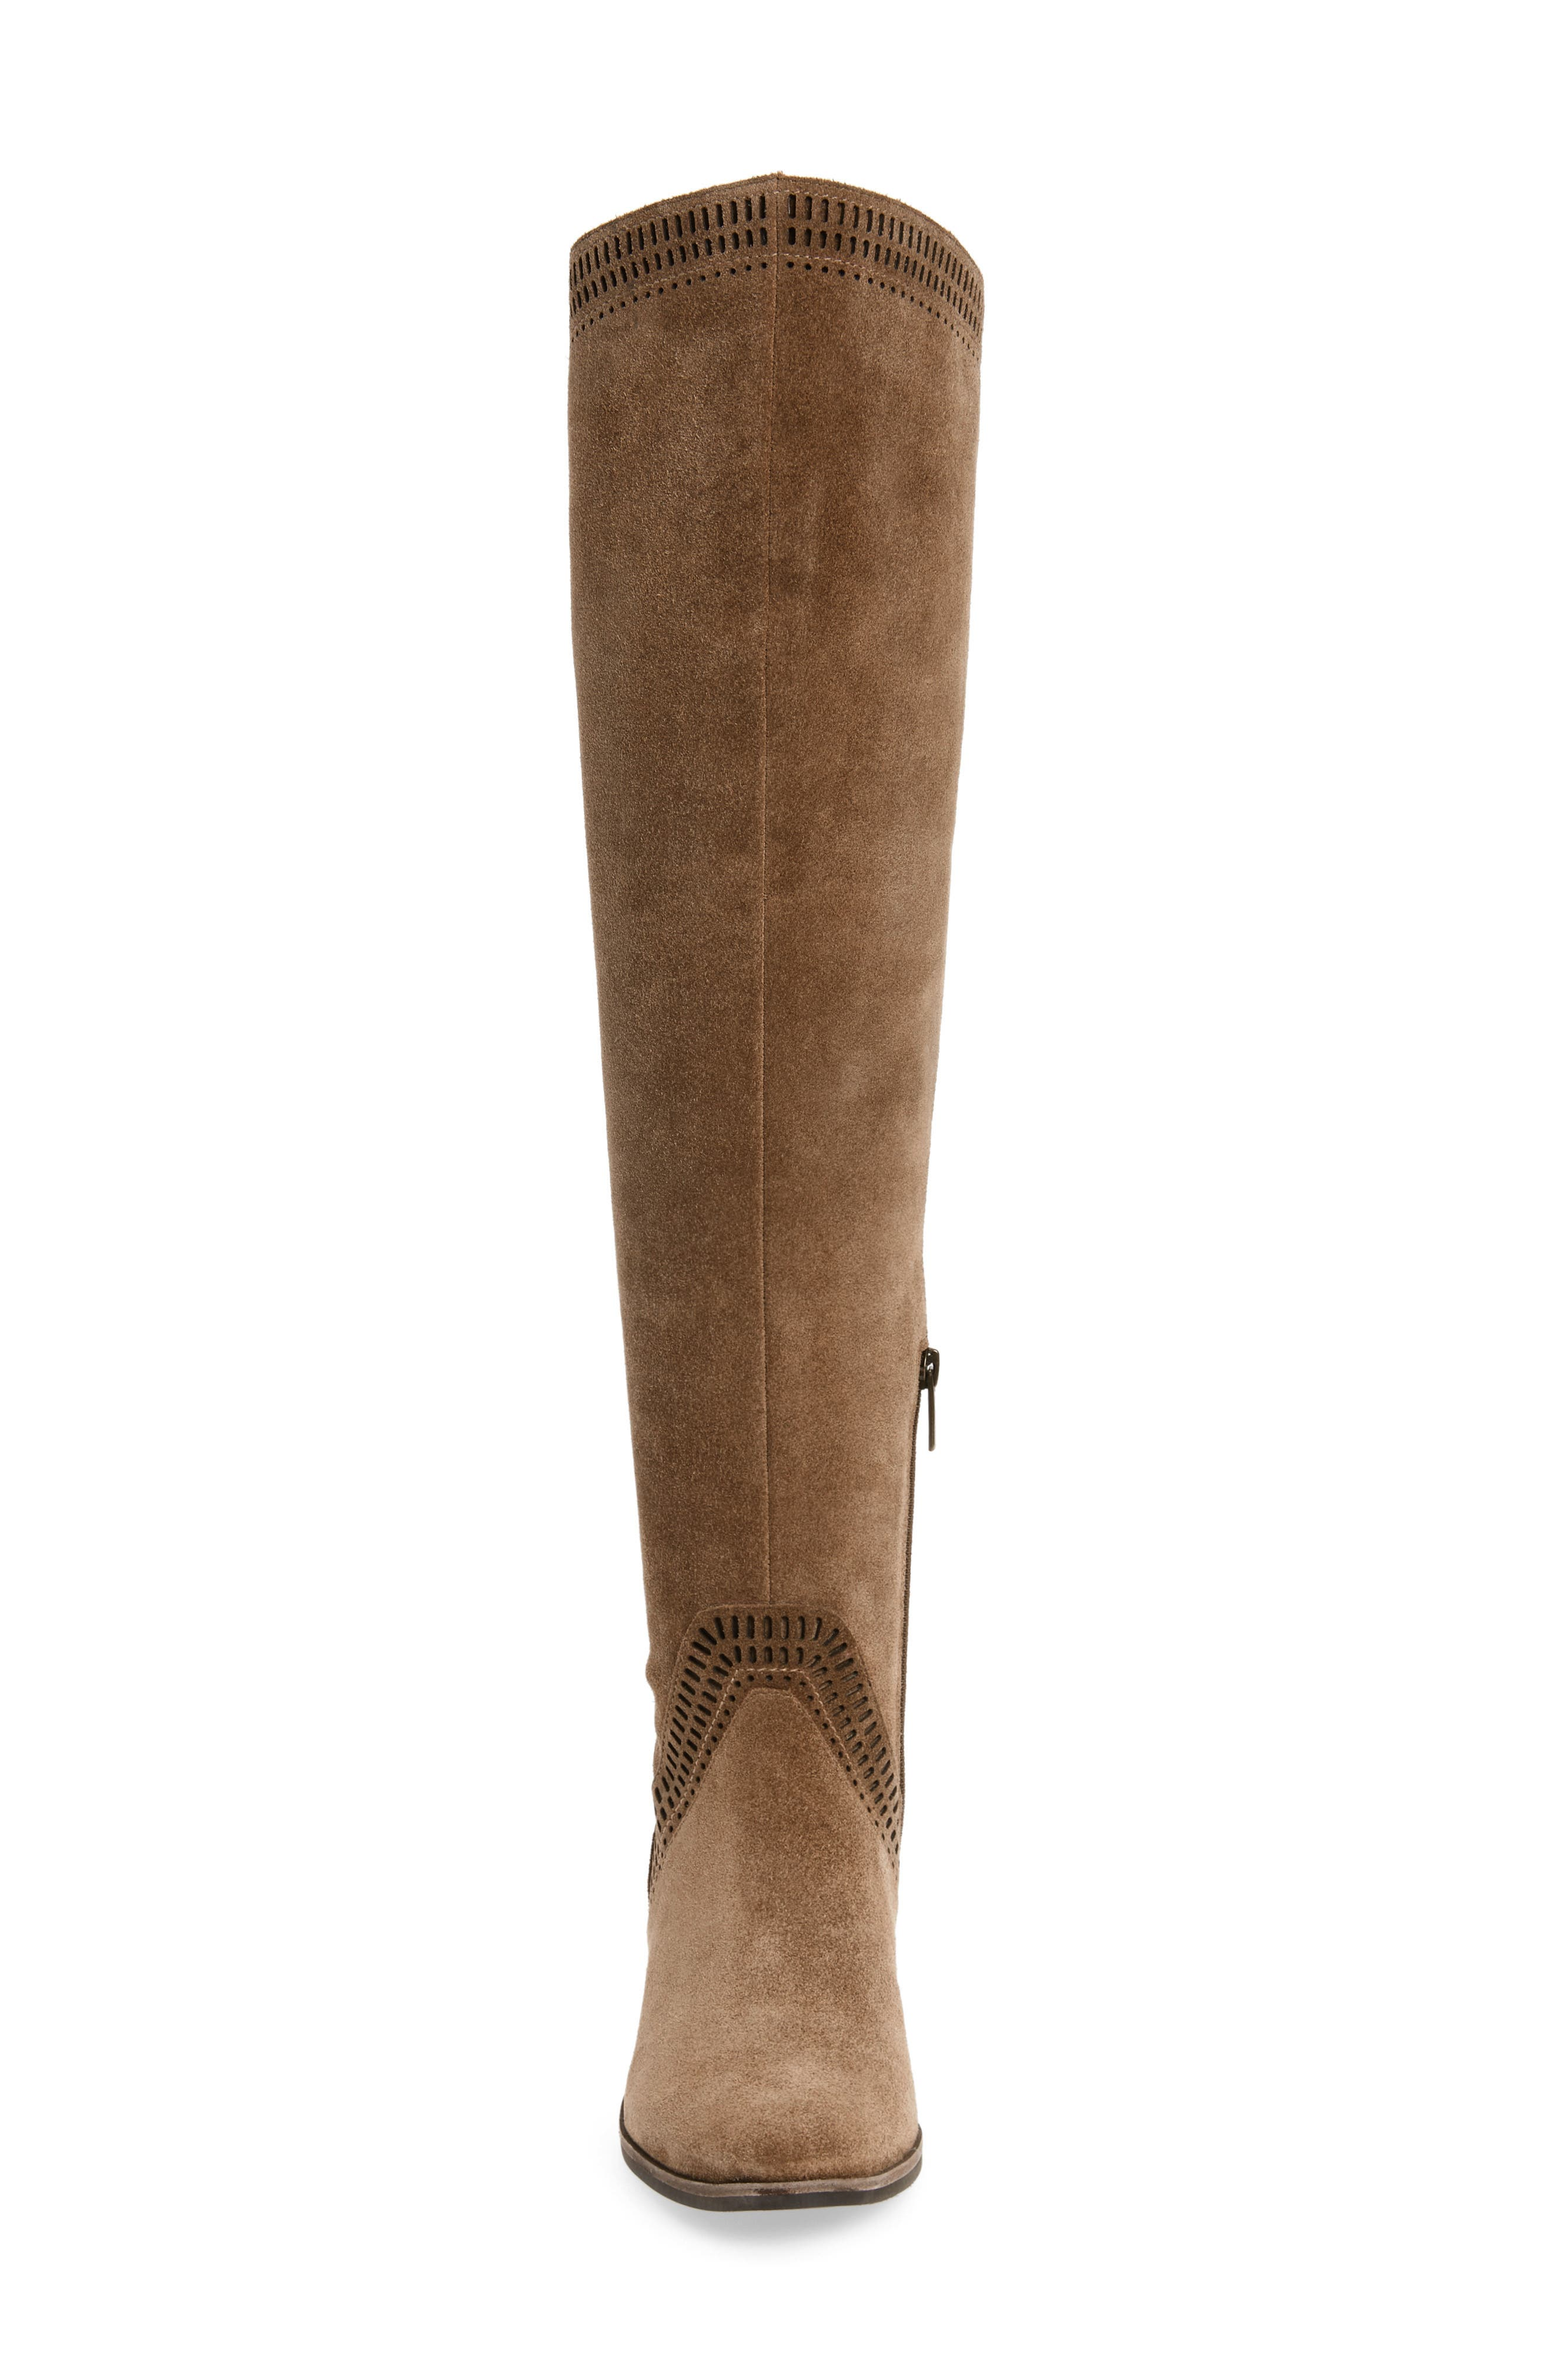 VINCE CAMUTO, Karinda Over the Knee Boot, Alternate thumbnail 4, color, 200